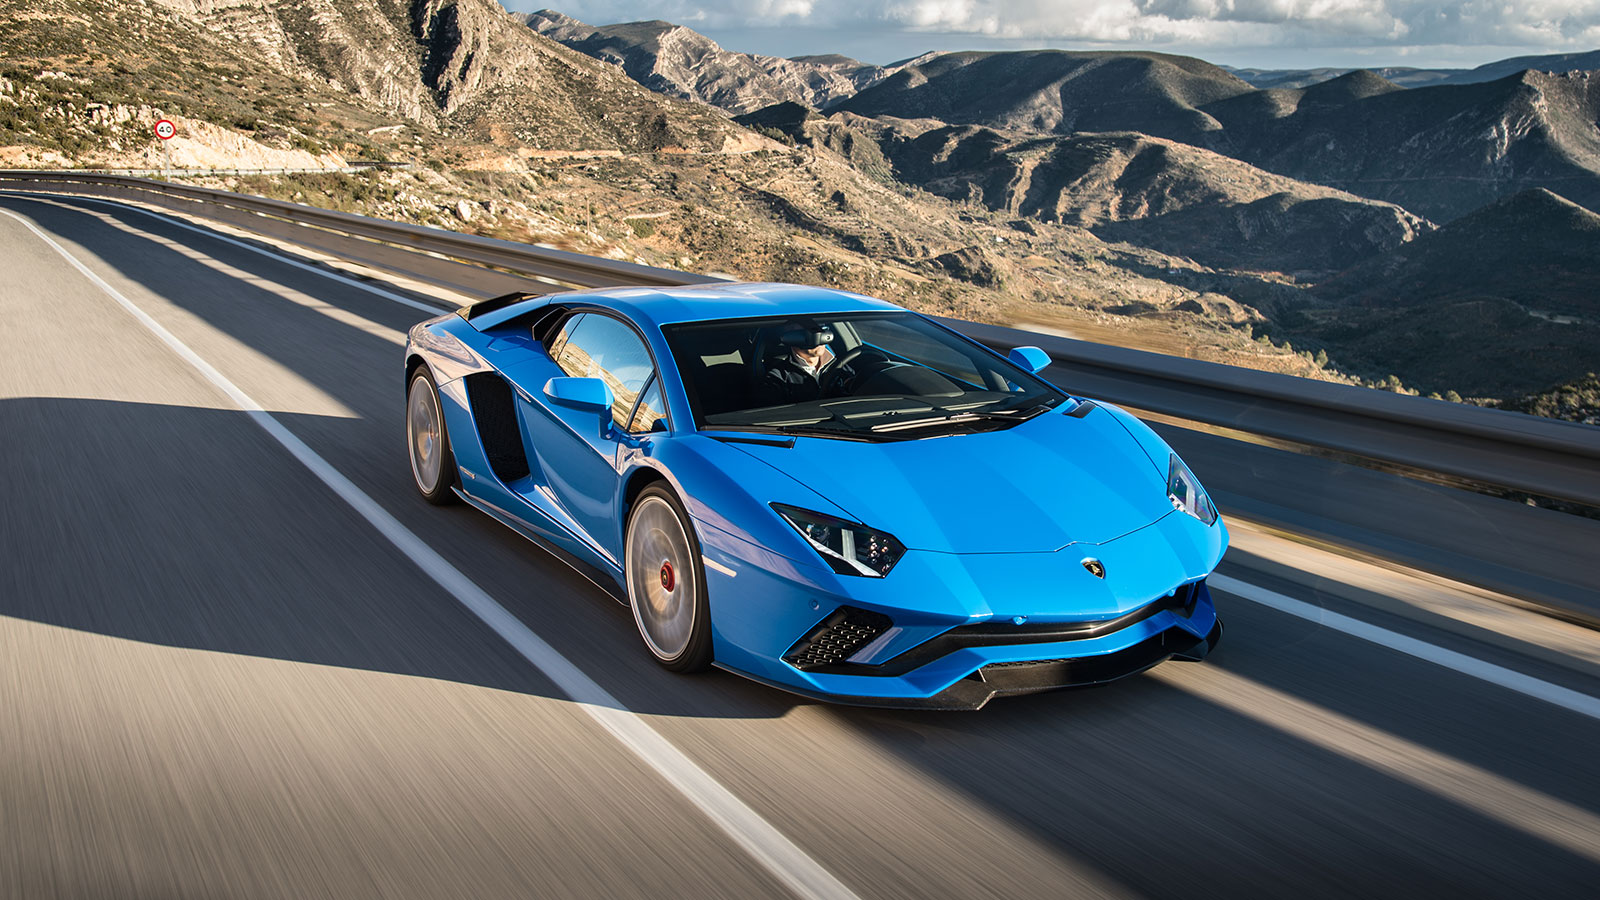 Lamborghini Aventador S Coupe - The Icon Reborn image 25